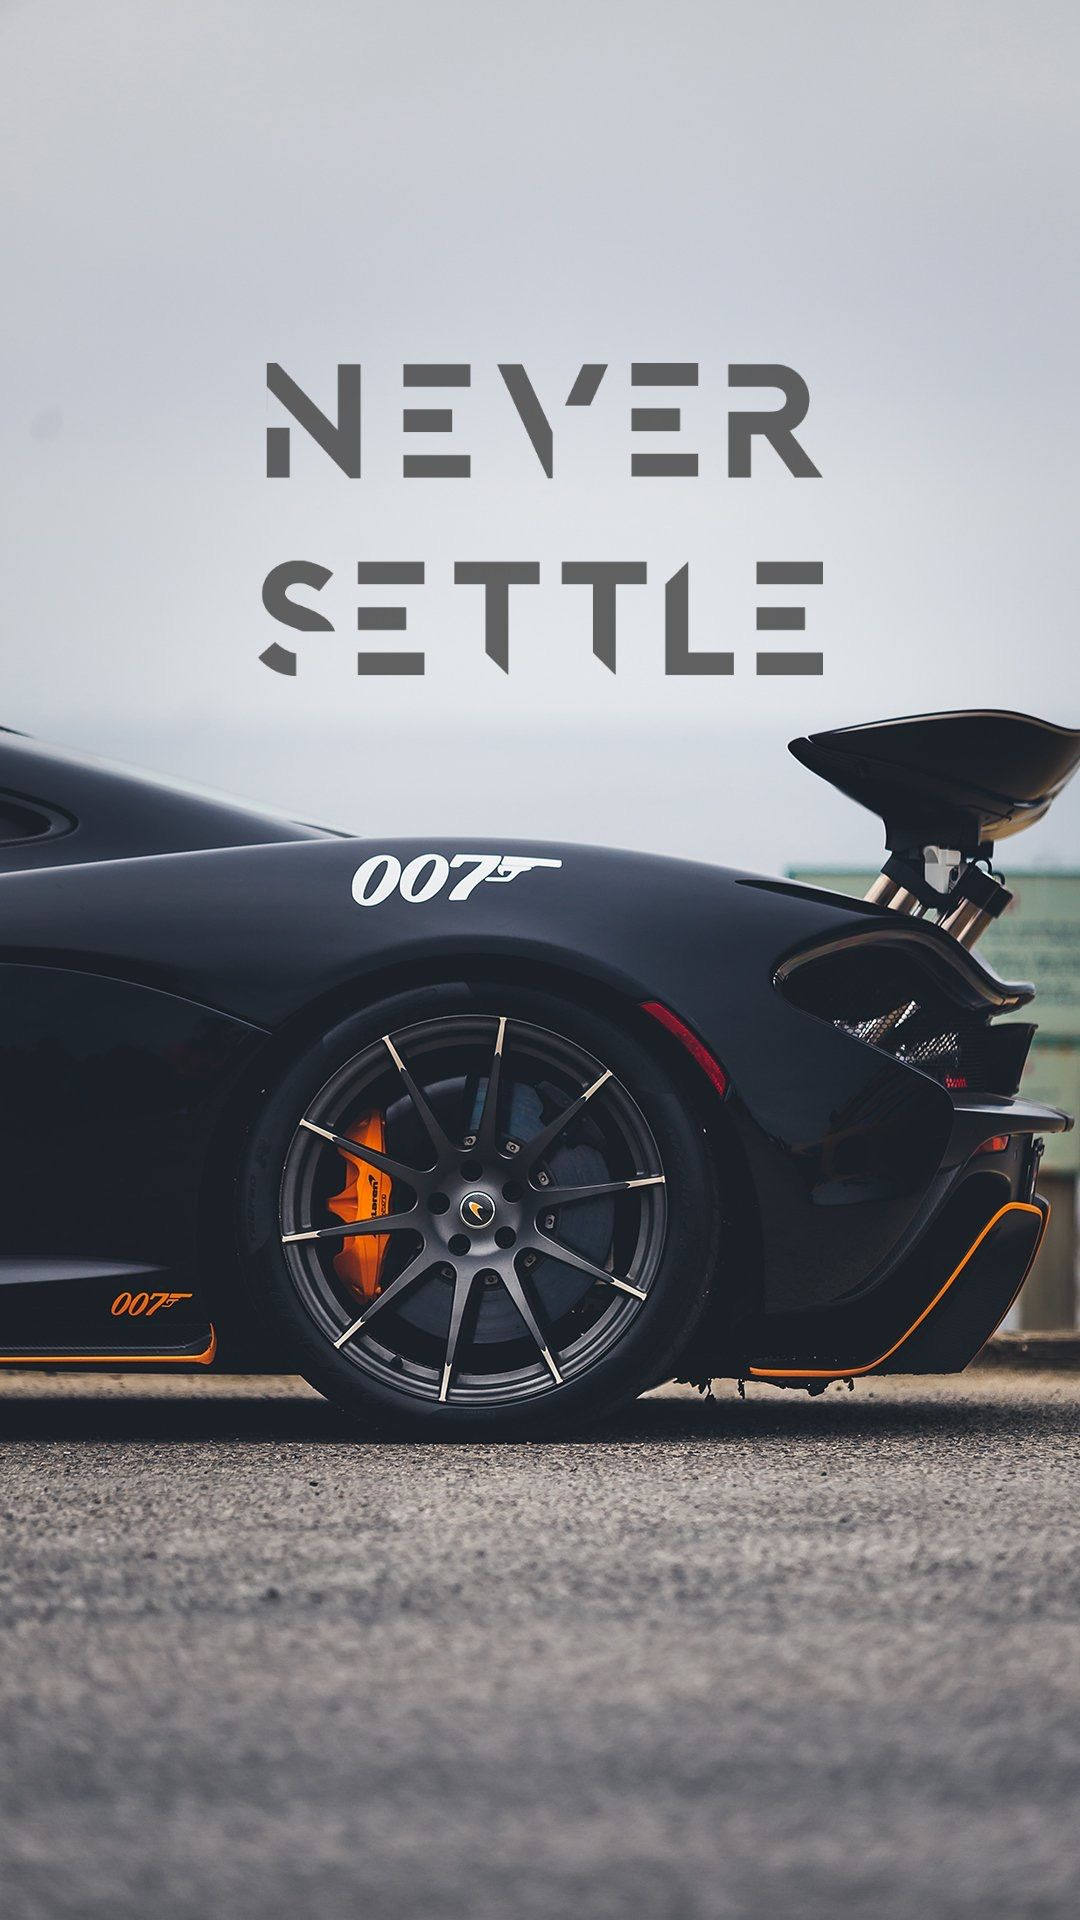 Pin By Dream Girl On Cars Never Settle Wallpapers Car